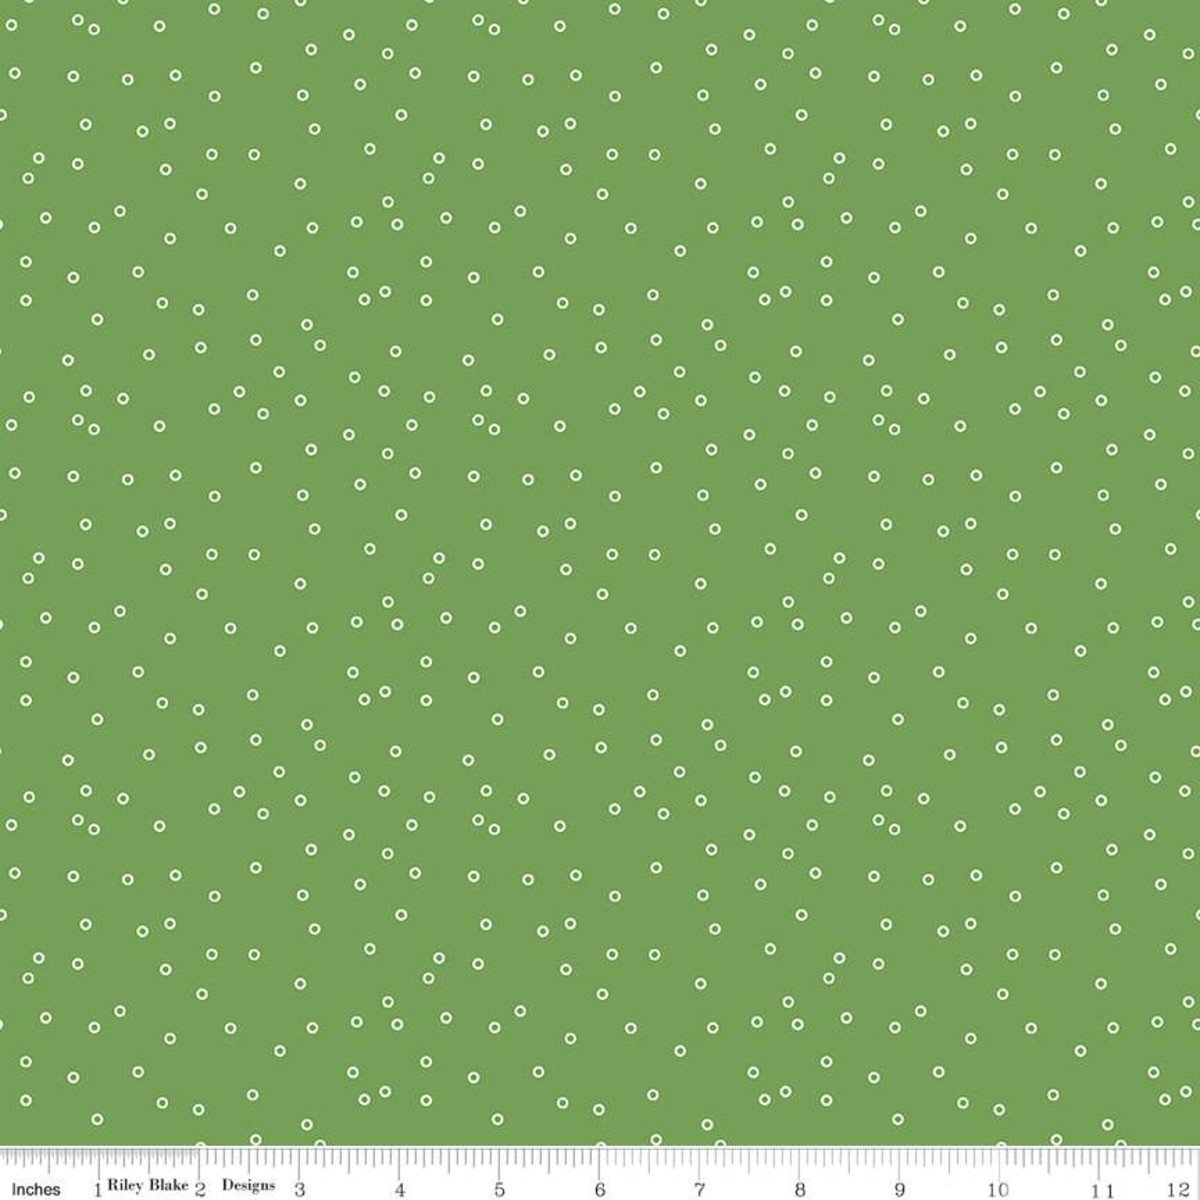 Fat Quarter CIRCLES CLOVER Prim Cotton Riley Blake Fabric